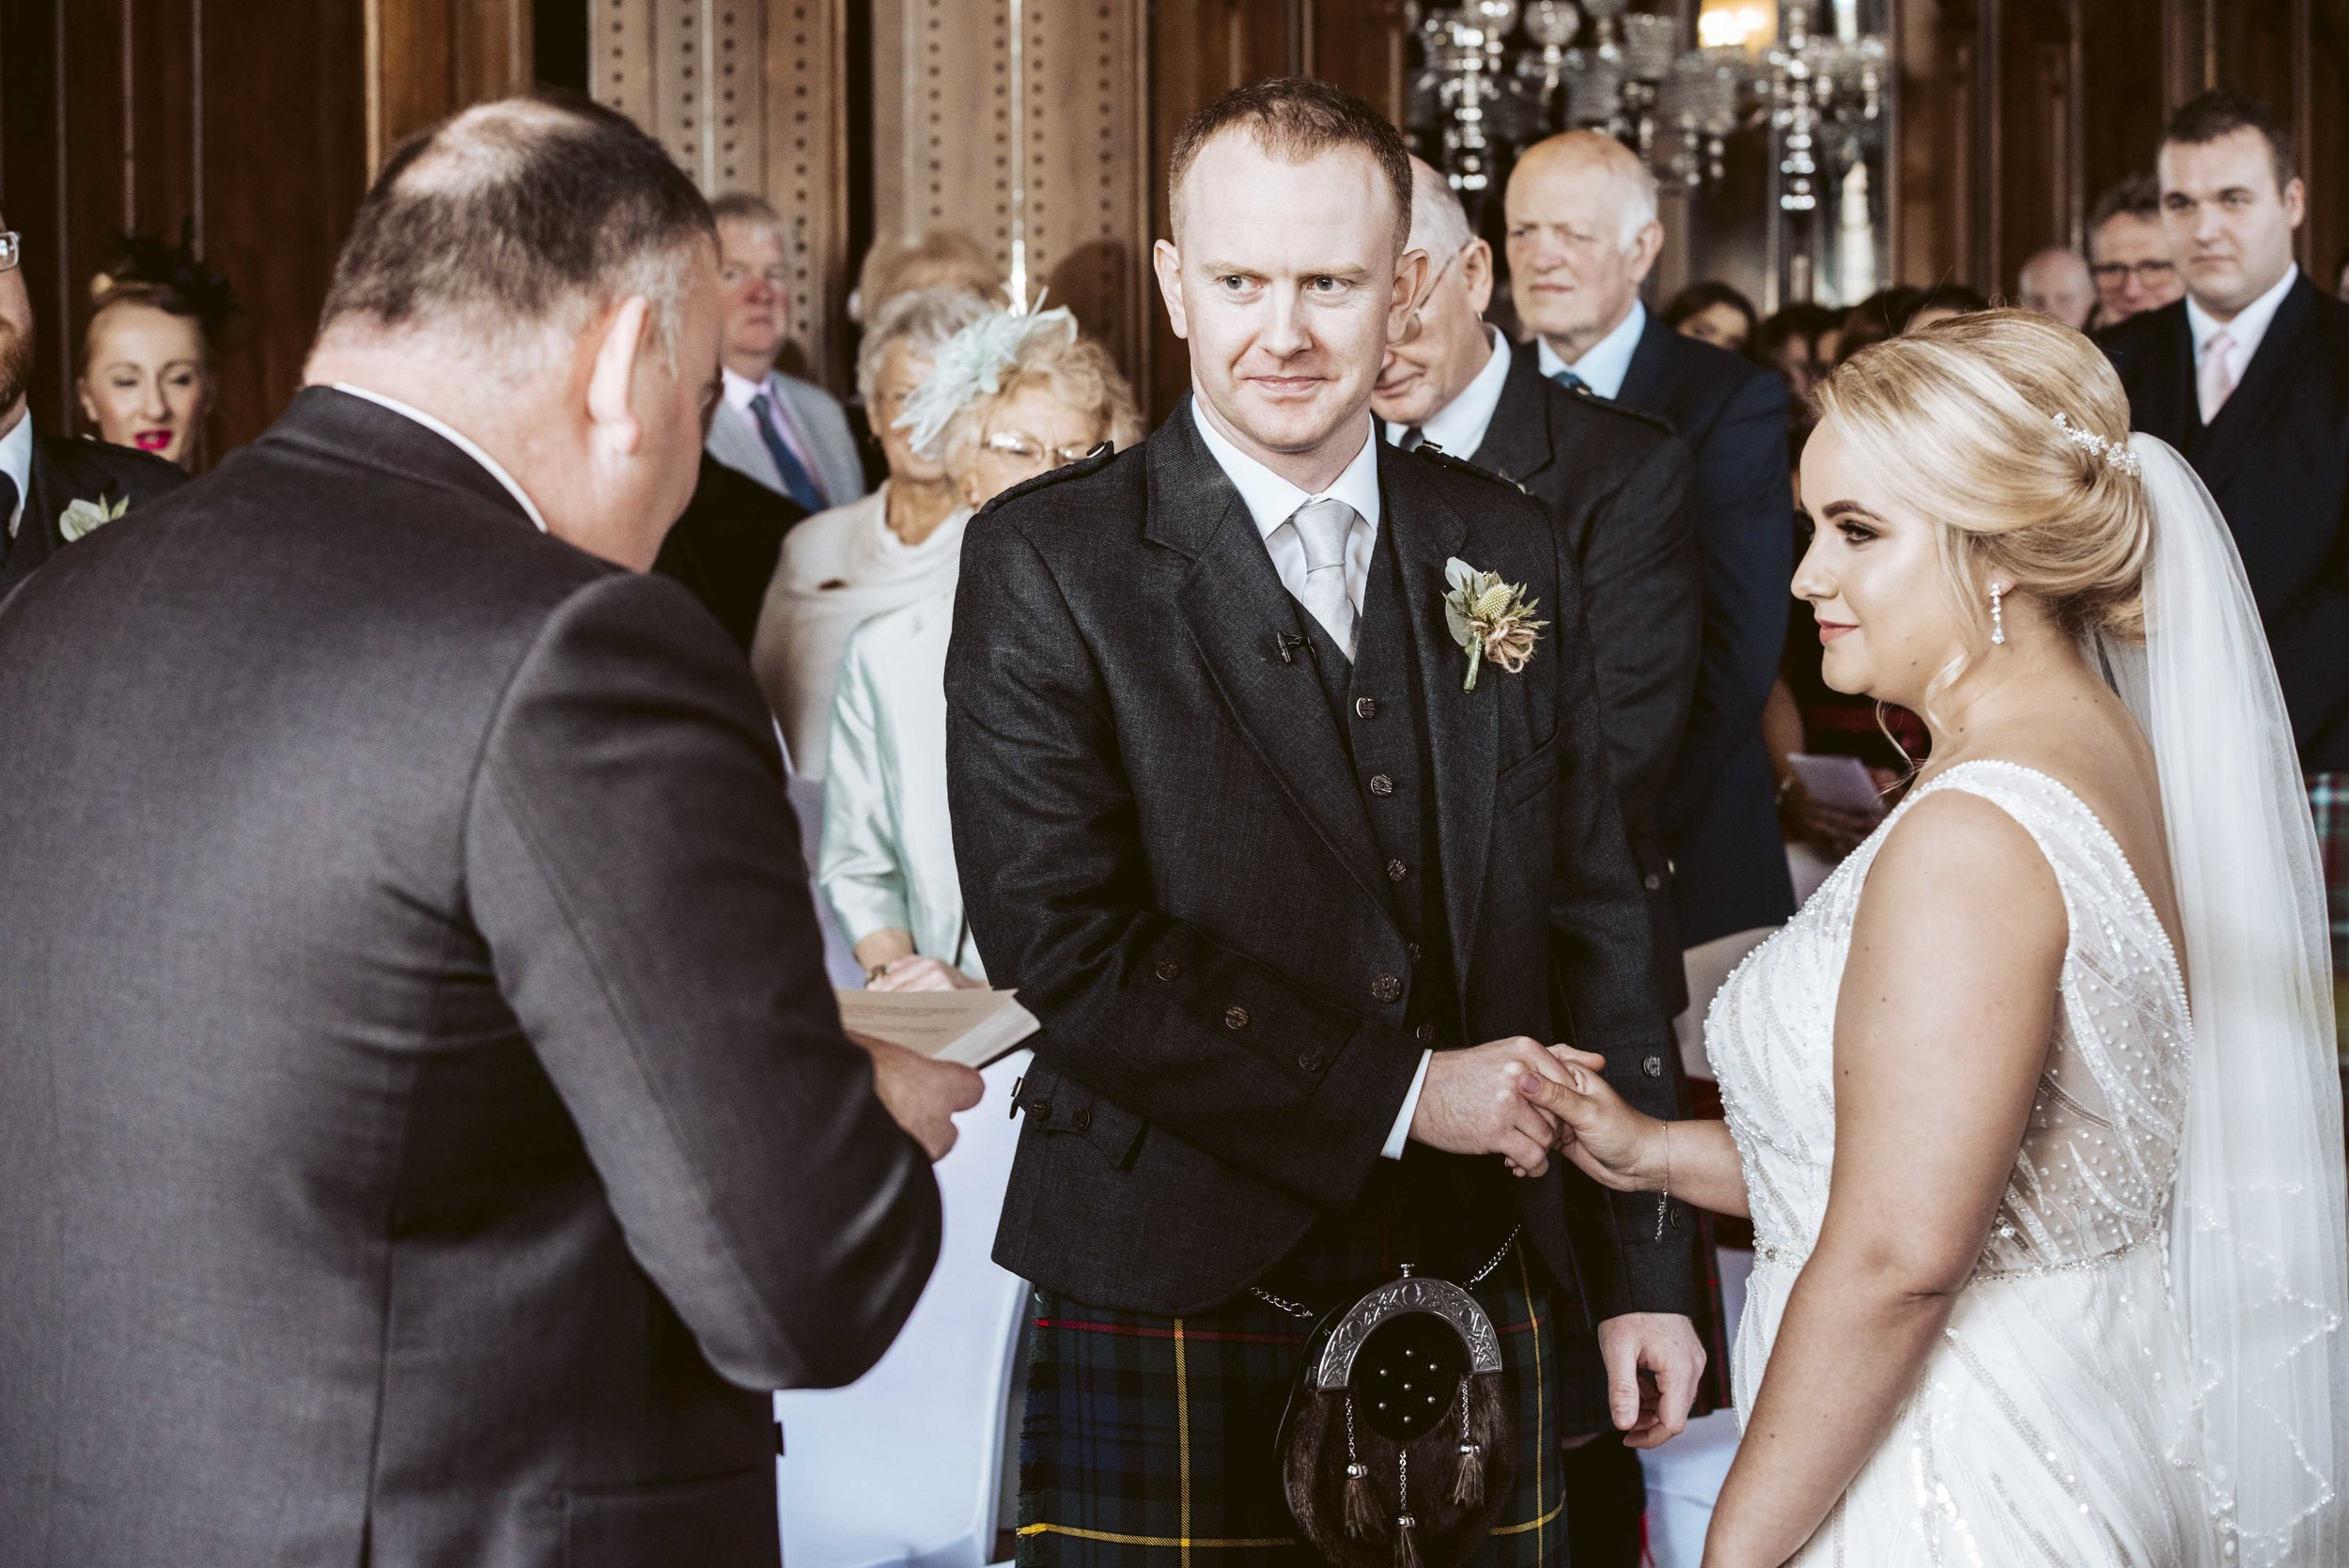 Mar Hall Wedding 2018, Haminsh & Emma McEwan 27.JPG